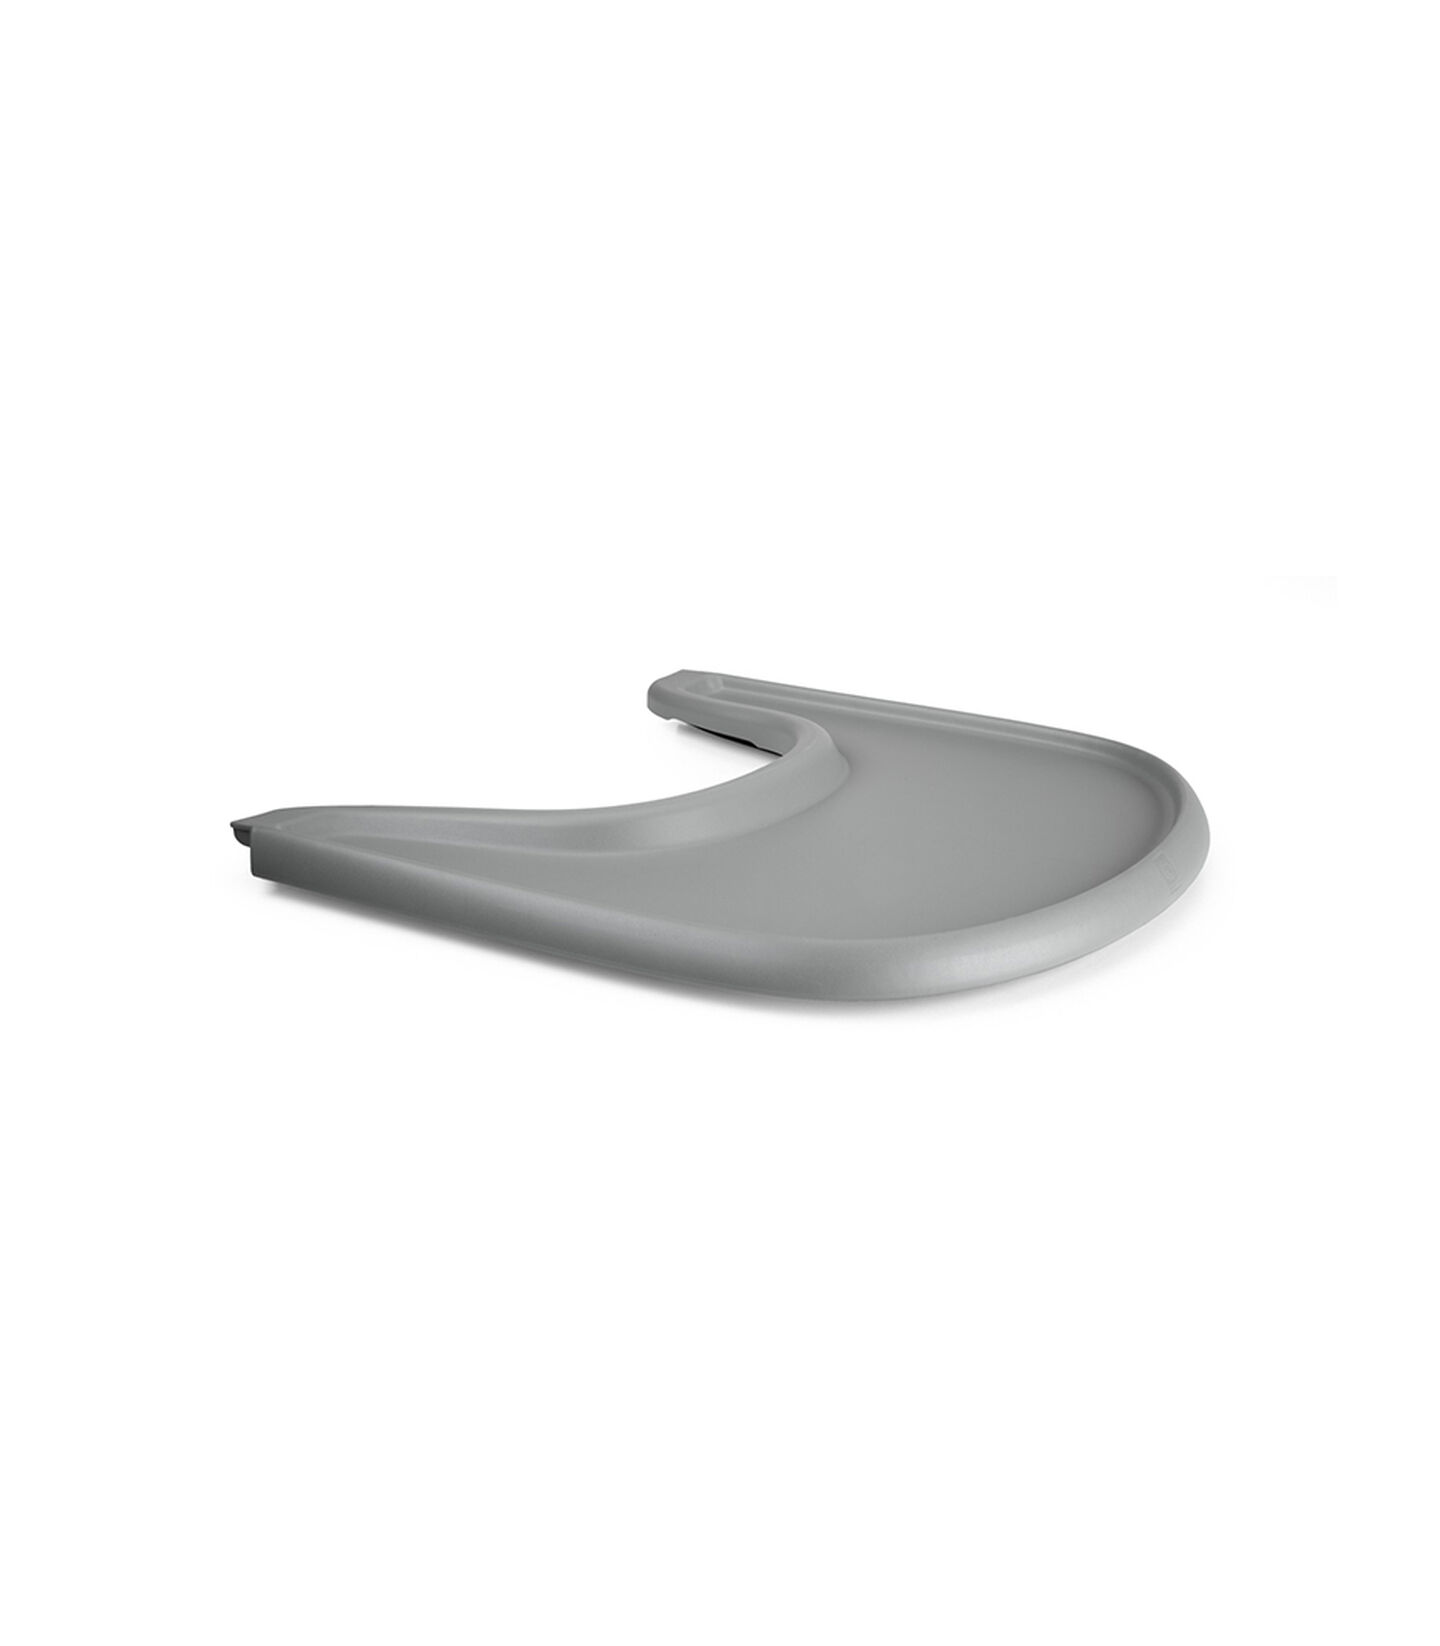 Stokke® Tray in Storm Grey, Storm Grey, mainview view 2